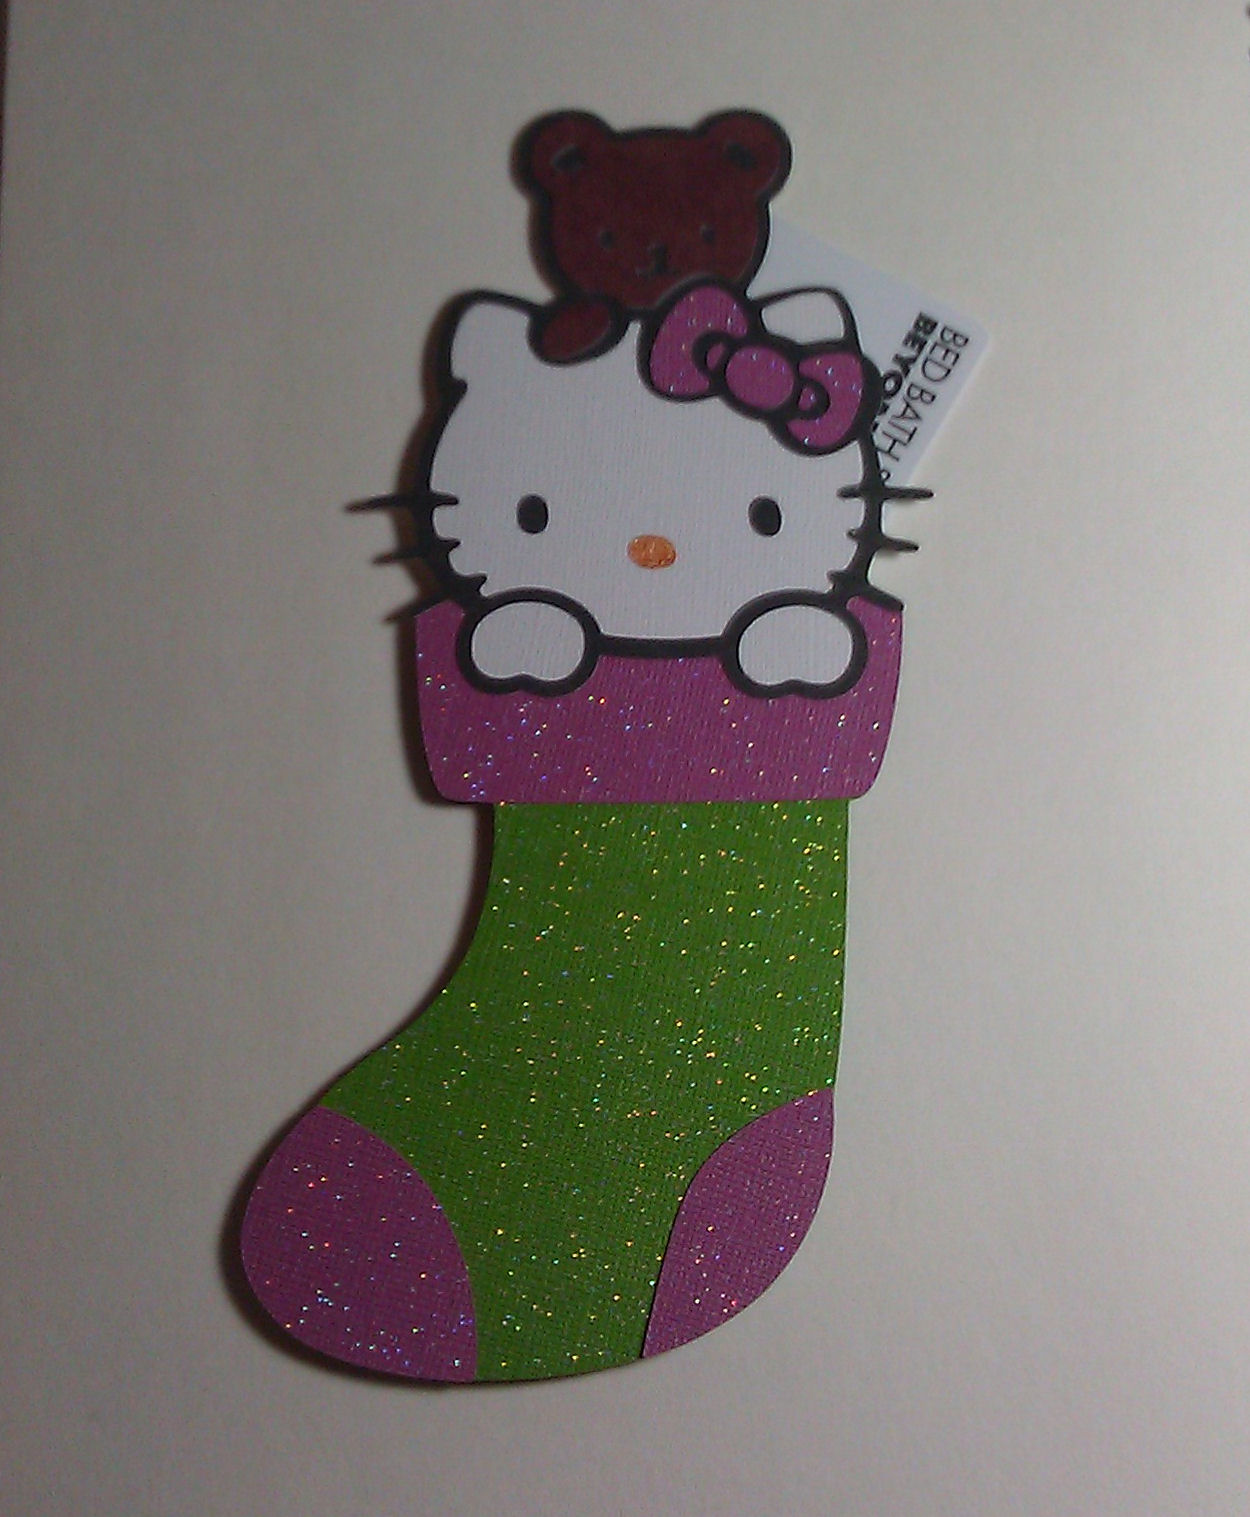 The glamorous side of scrapping hello kitty christmas party blog hop winter frolic and hello kitty greetings cricut cartridges m4hsunfo